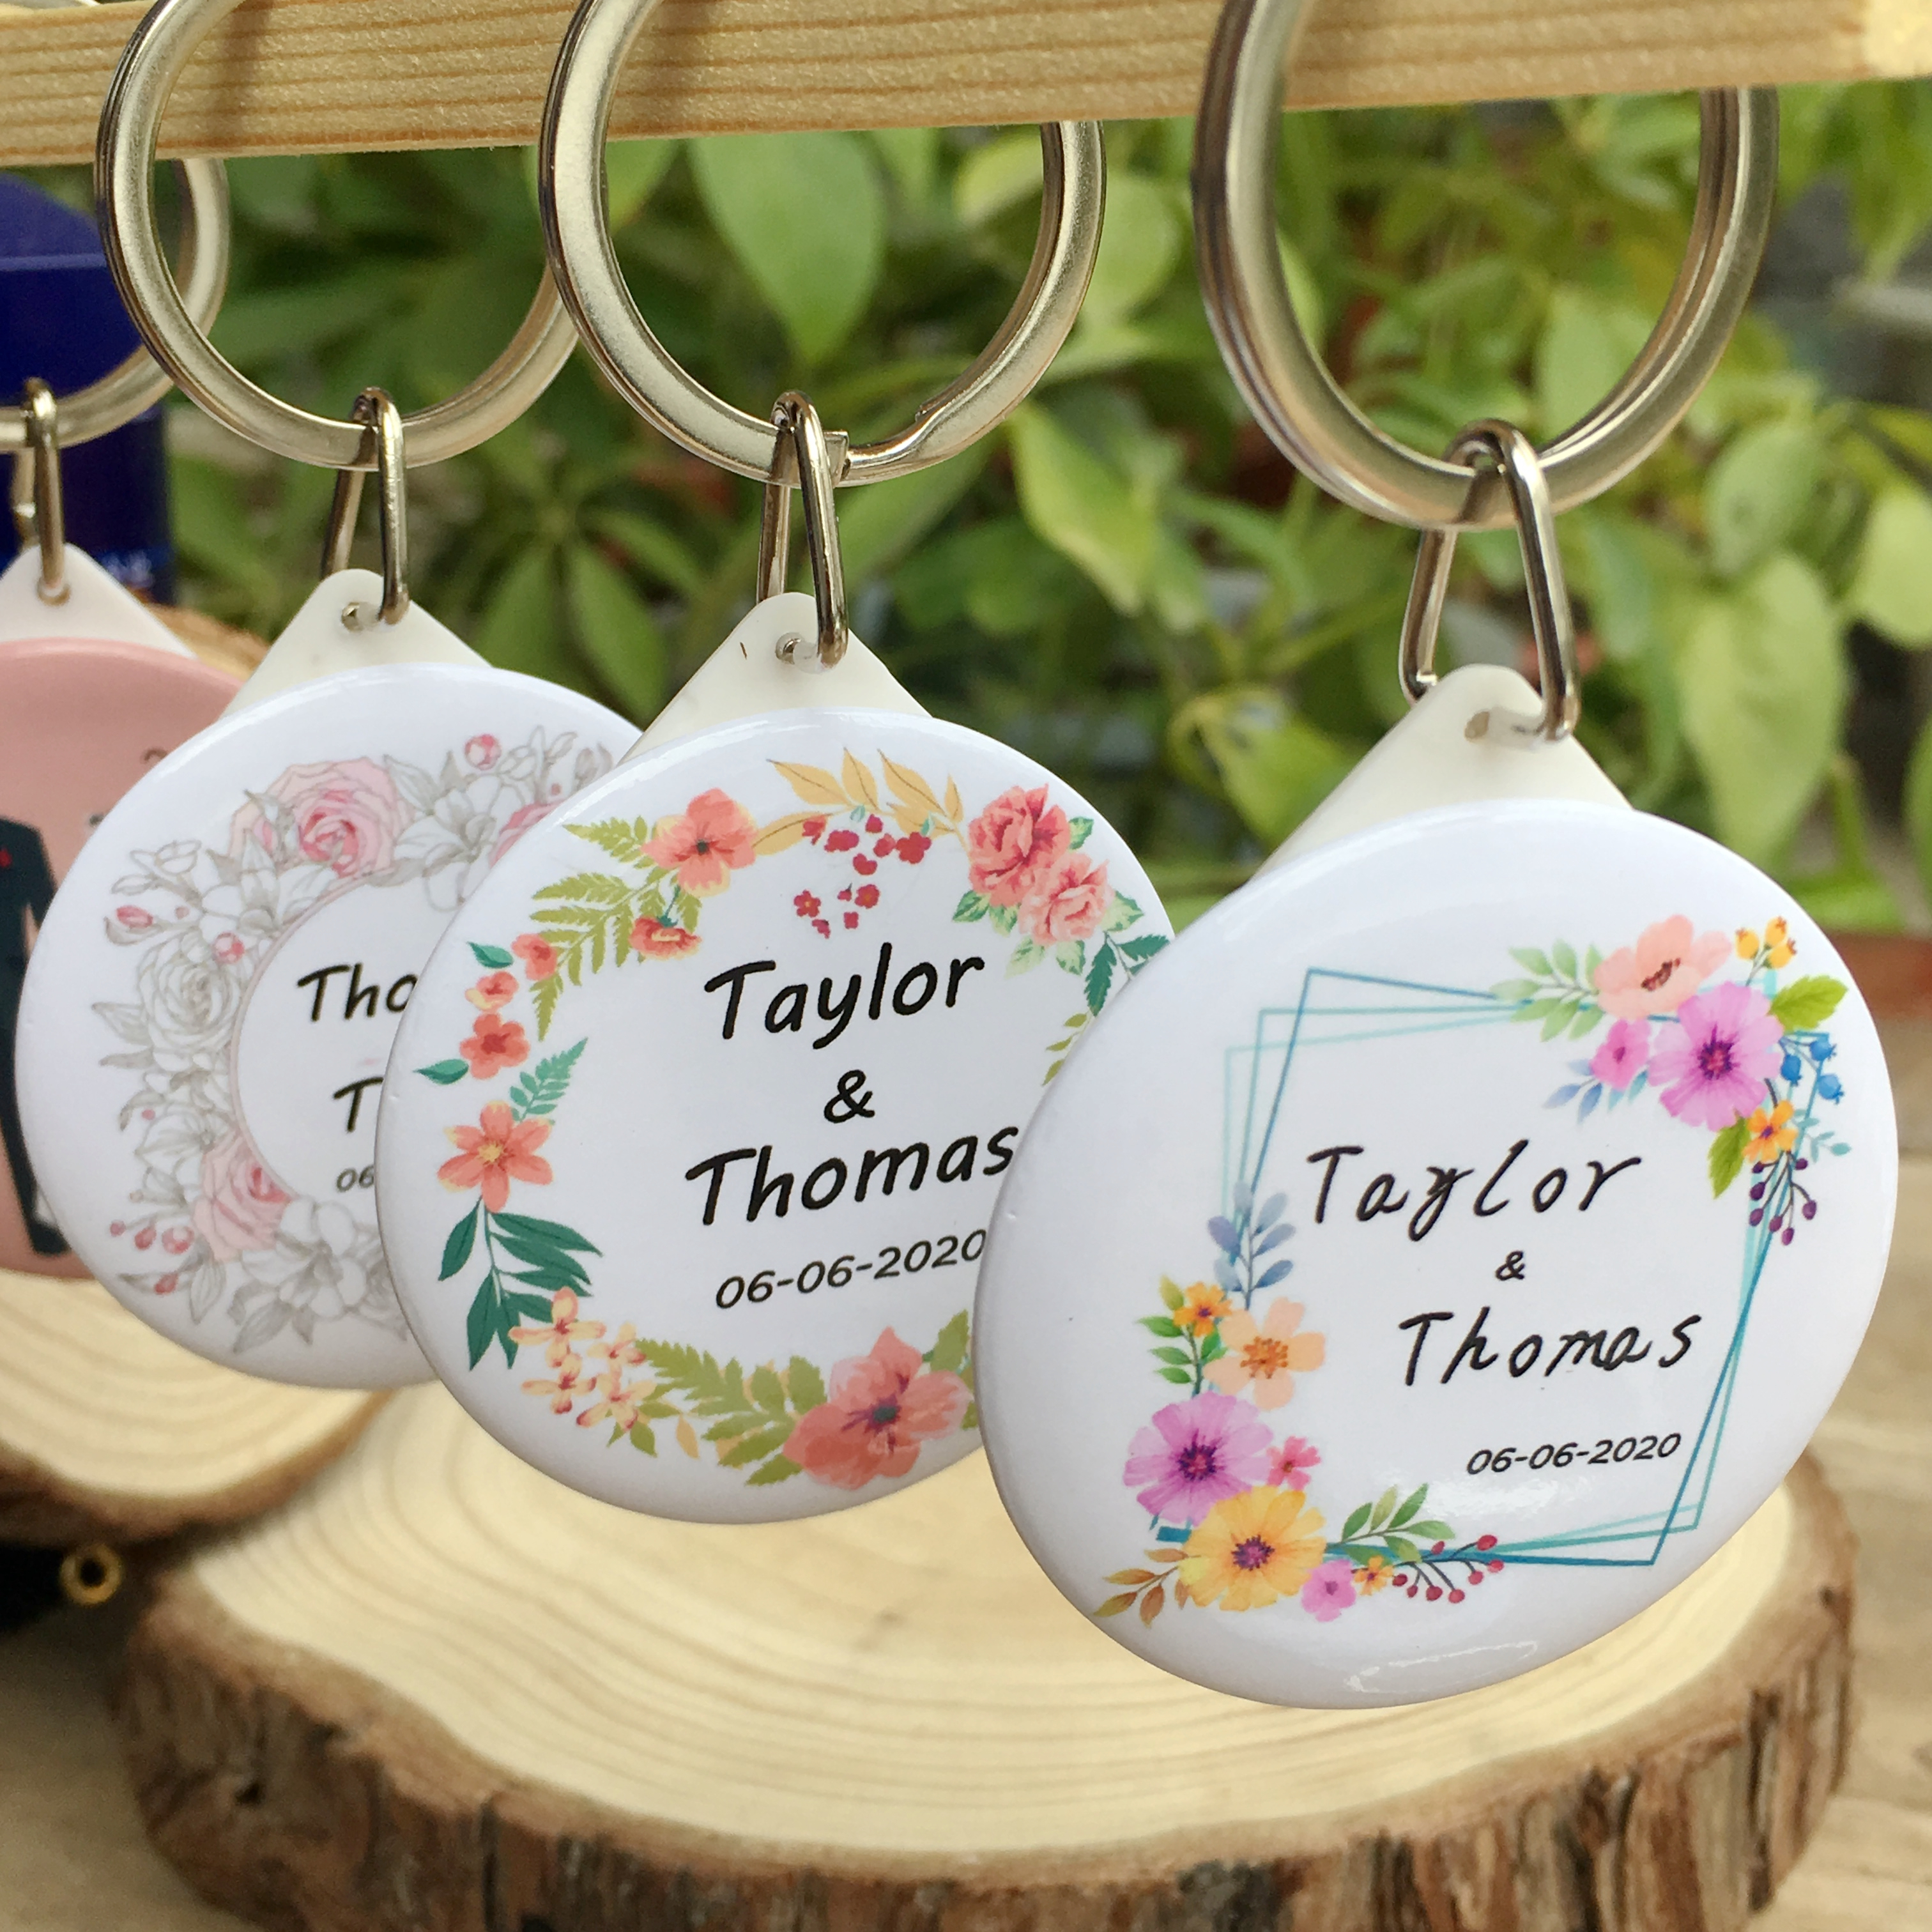 50pcs Personalized name date Keychain with Mirror Custom Wedding Favors And Gifts Wedding Gifts For Guests